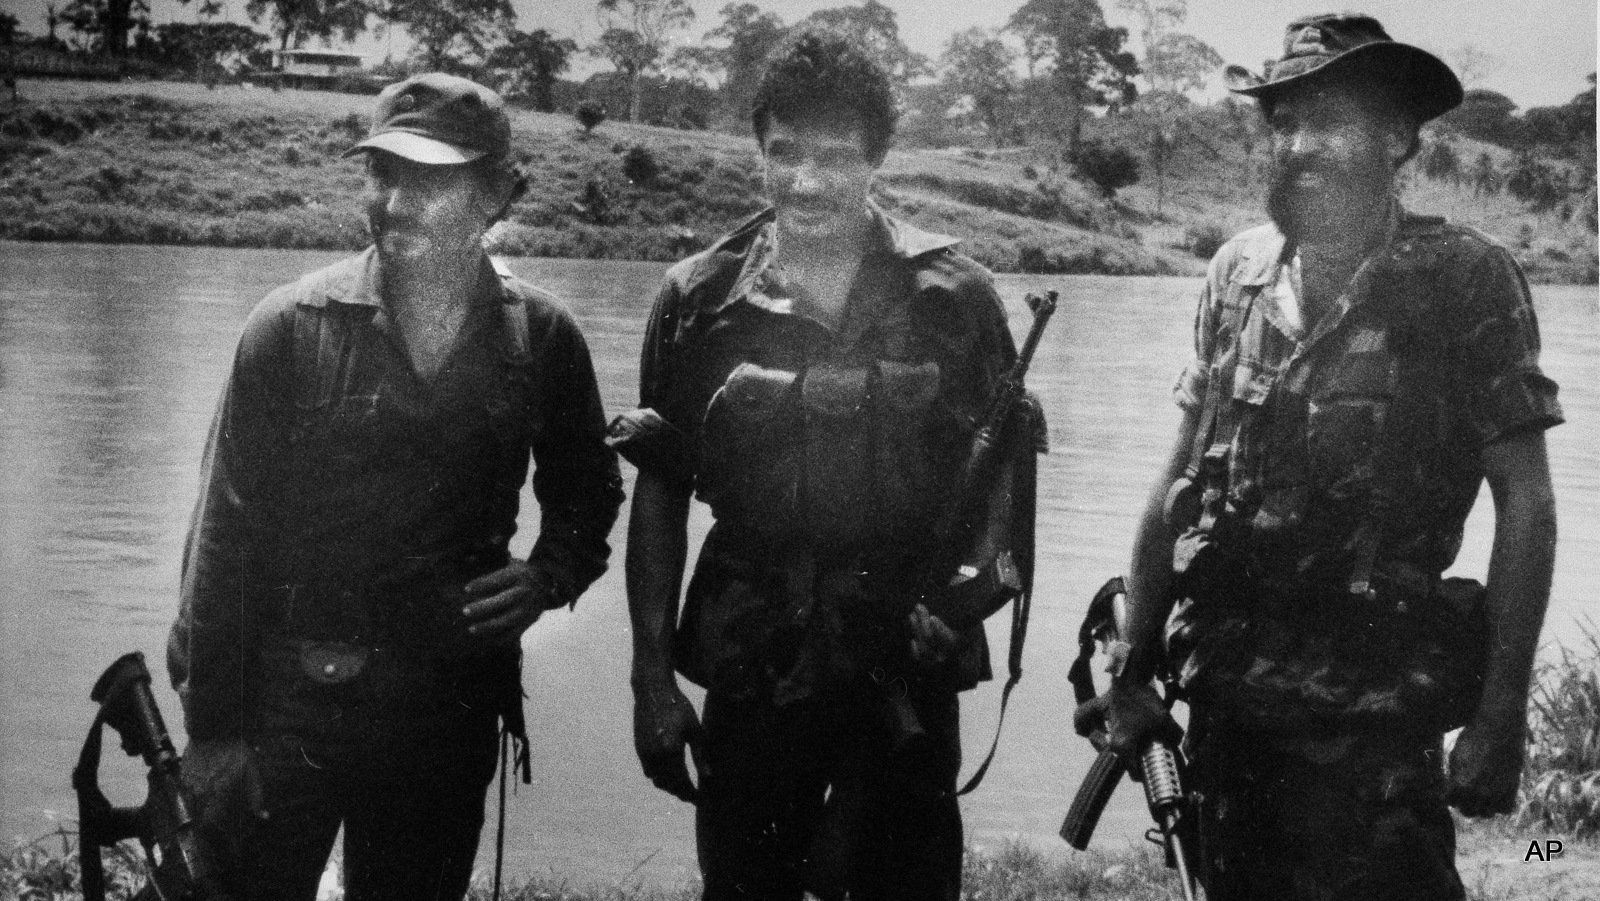 U.S. backed Nicaraguan rebel leader stands with guerrilla fighters with  in their camp in southern Nicaragua, 1983.  The rebel, trained, armed and funded by the CIA, formerd to overthrow the Nicaraguan Sandinista government.